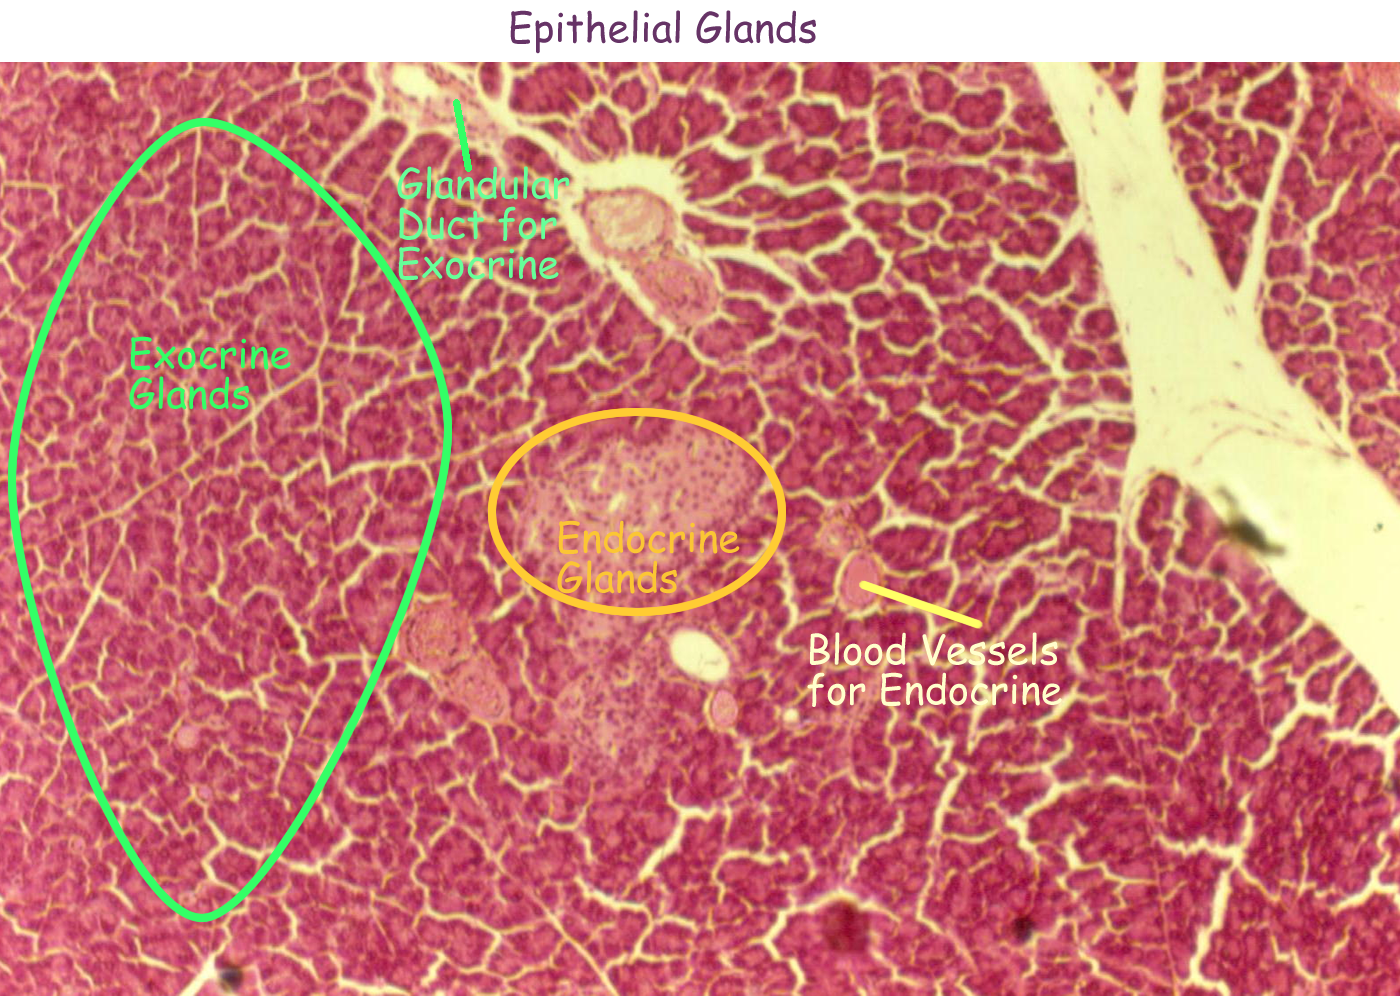 tissues_histo_EPI_GLANDULAR_exoendo_labeled.png